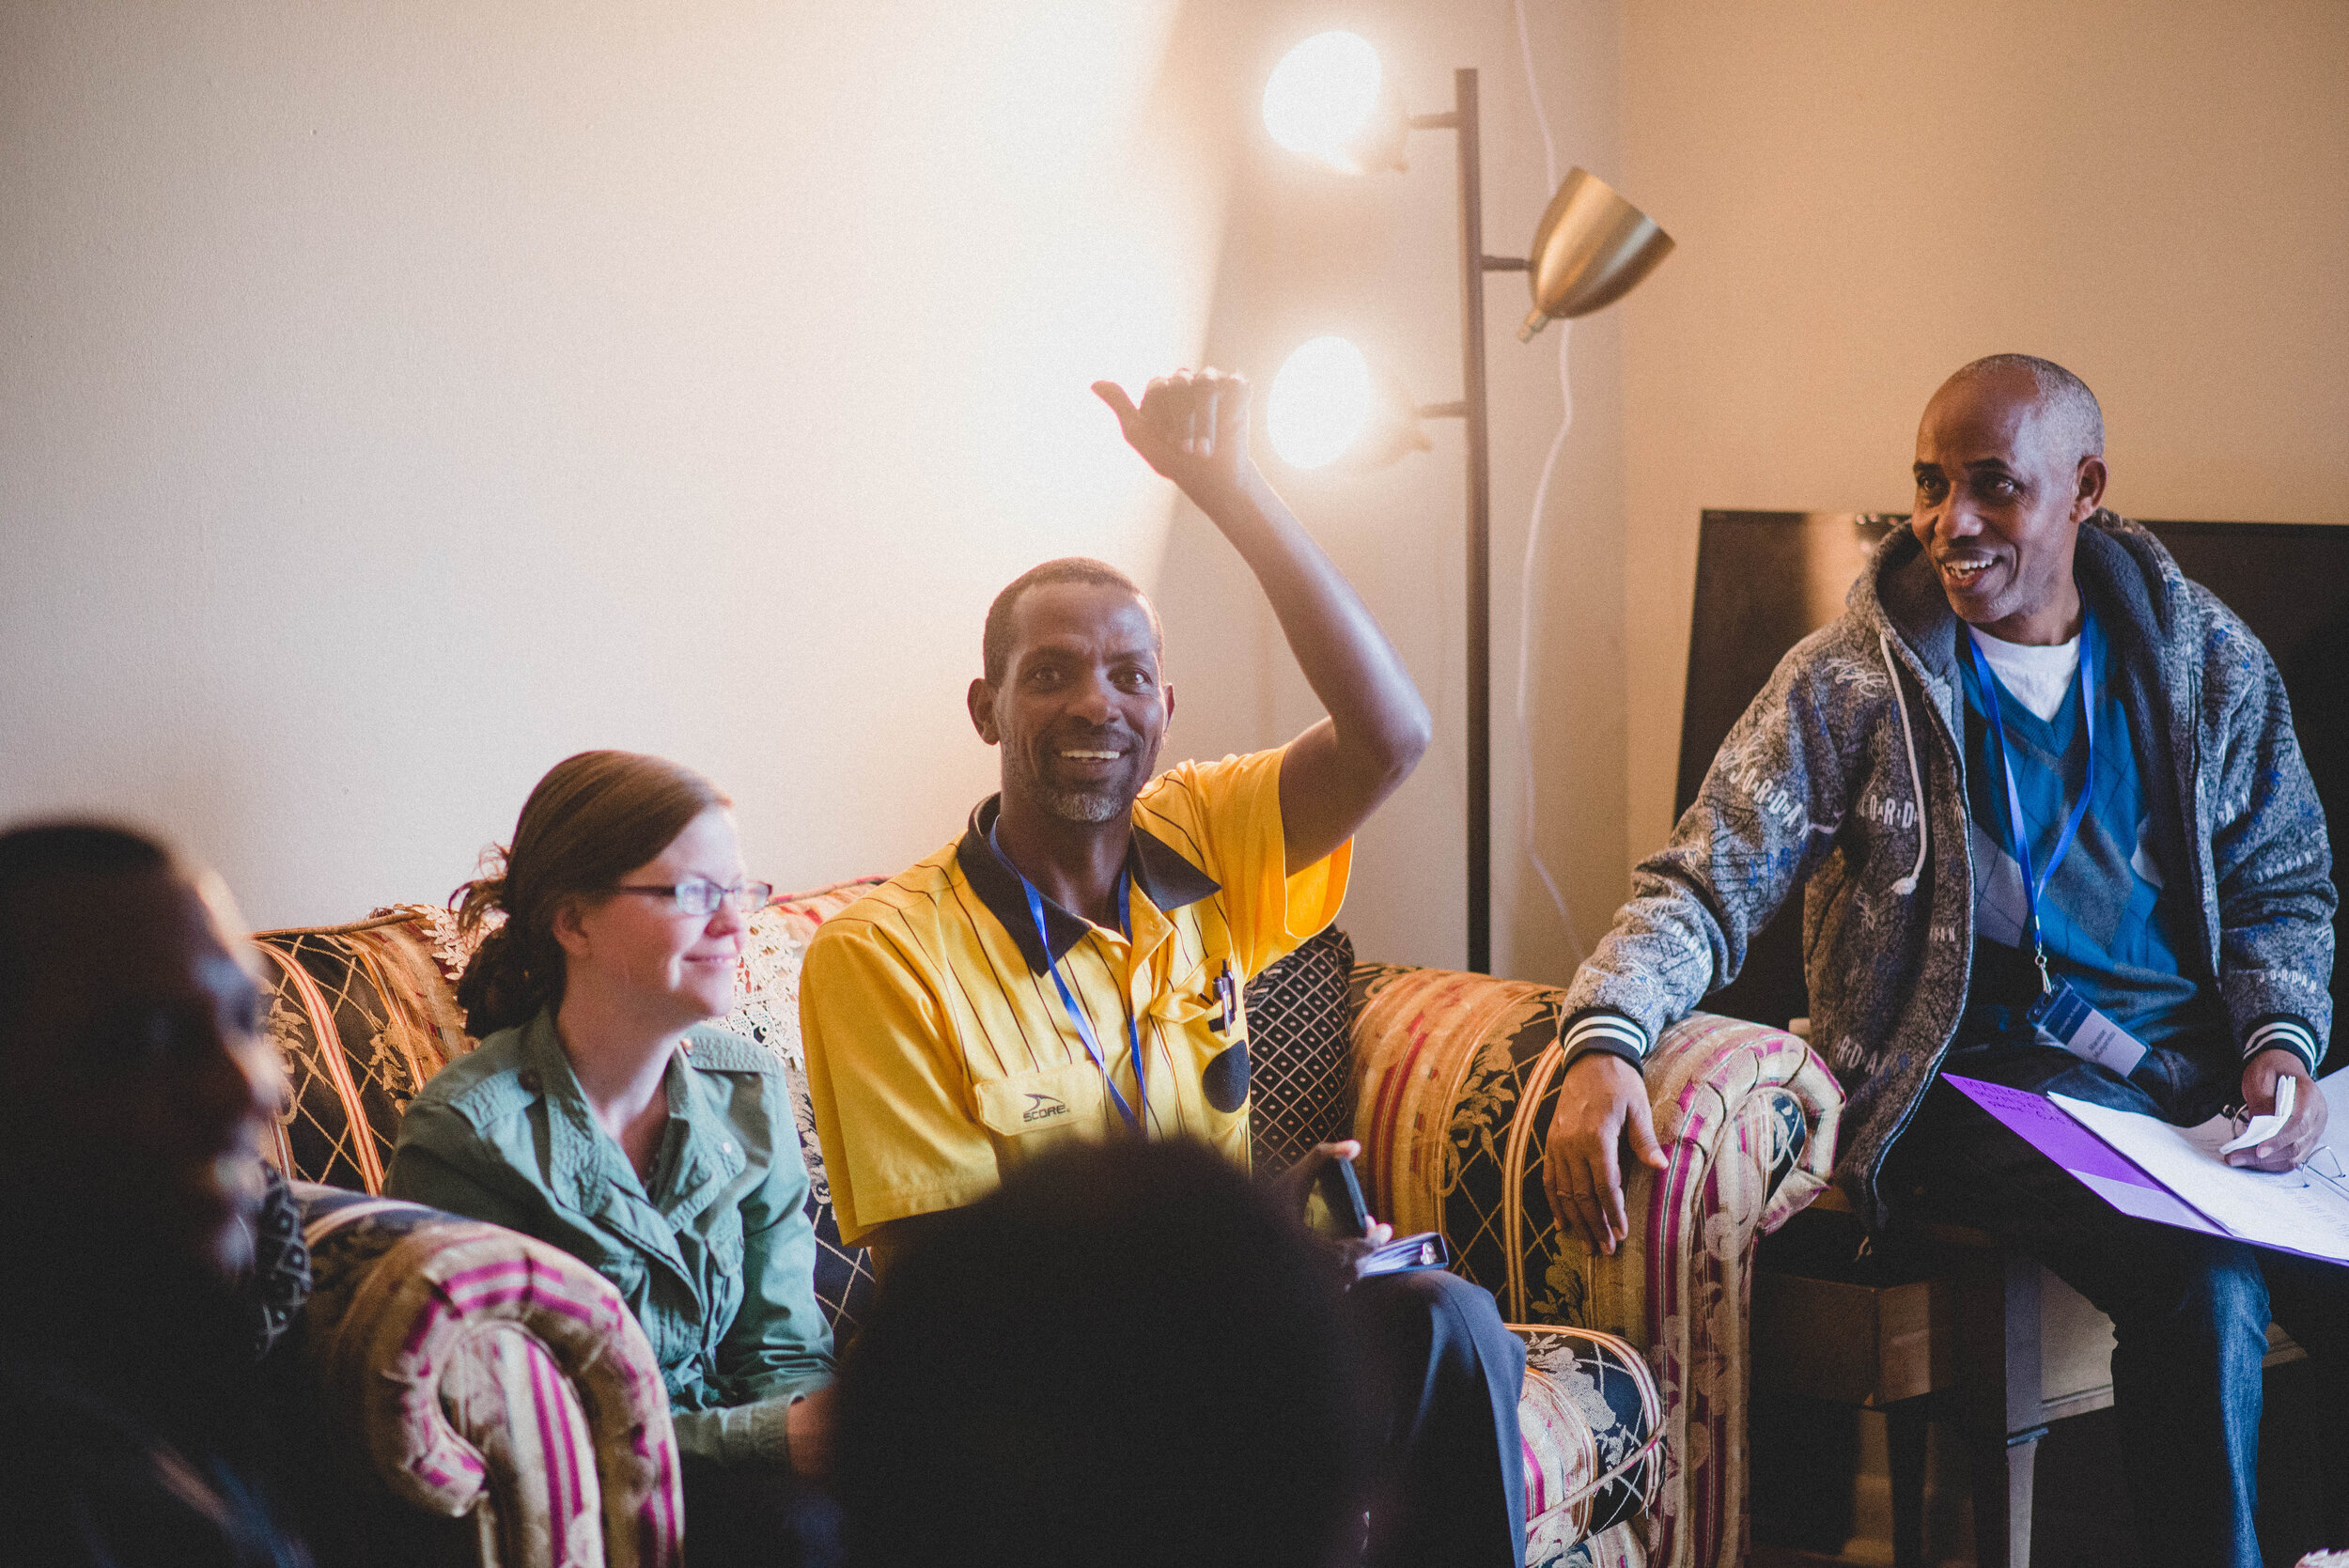 Brynn Buchanan teaches Swahili at the Institute for G.O.D. and has spent years studying East Africa and serving its people. Her gift for language, patience in listening, and steadfastness in service makes her a 'favorite' with the group.